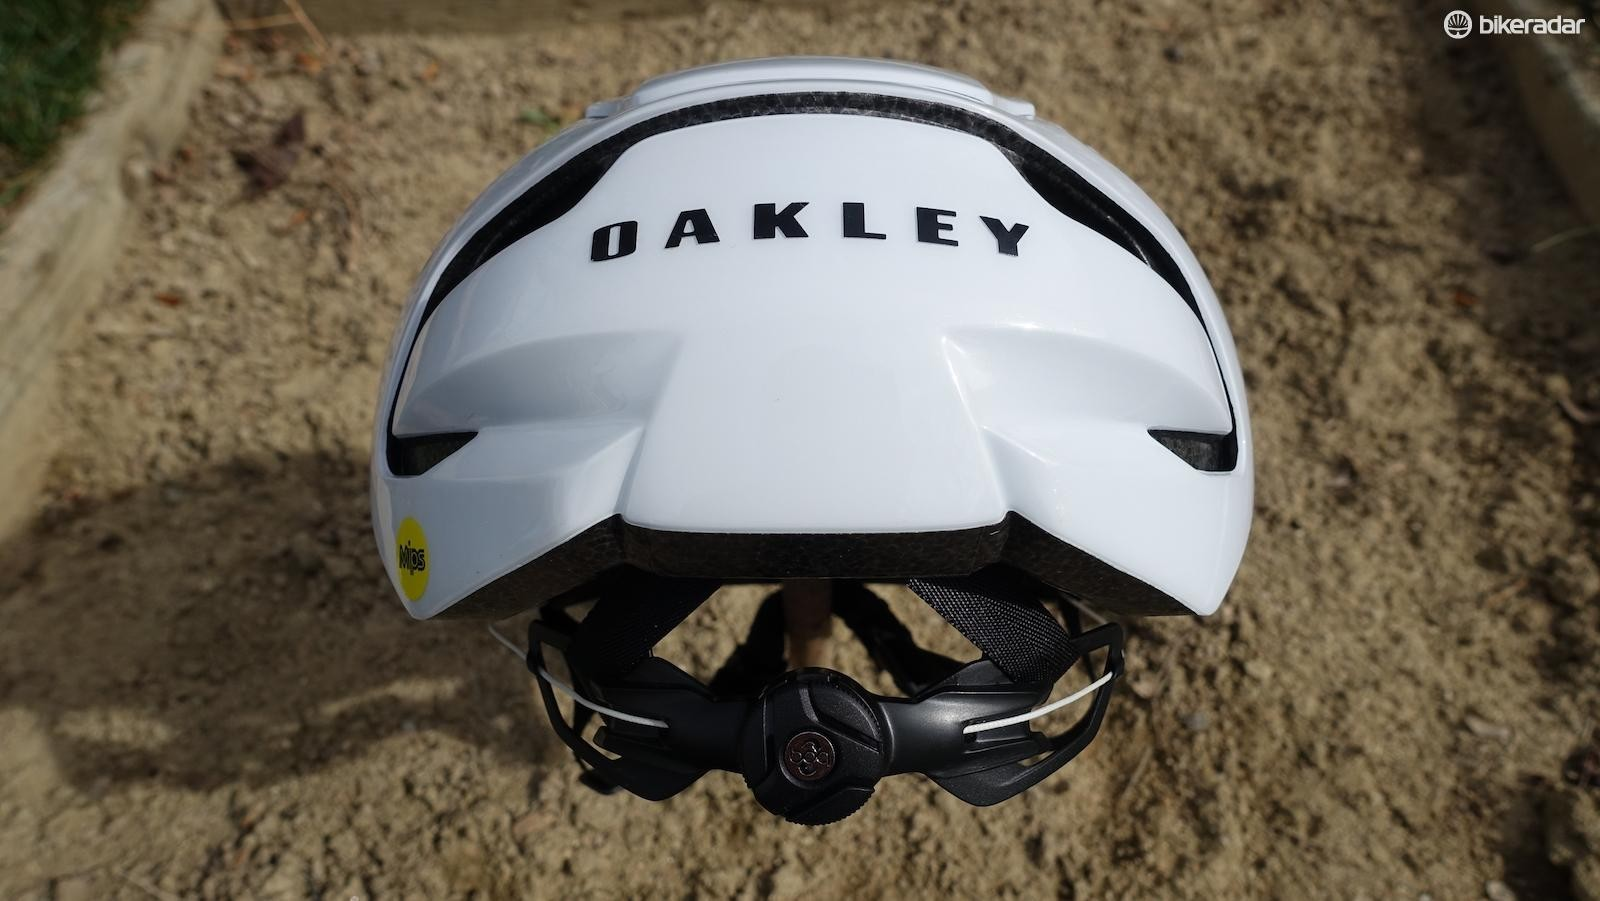 Unlike the front of the helmet, the rear is very closed off